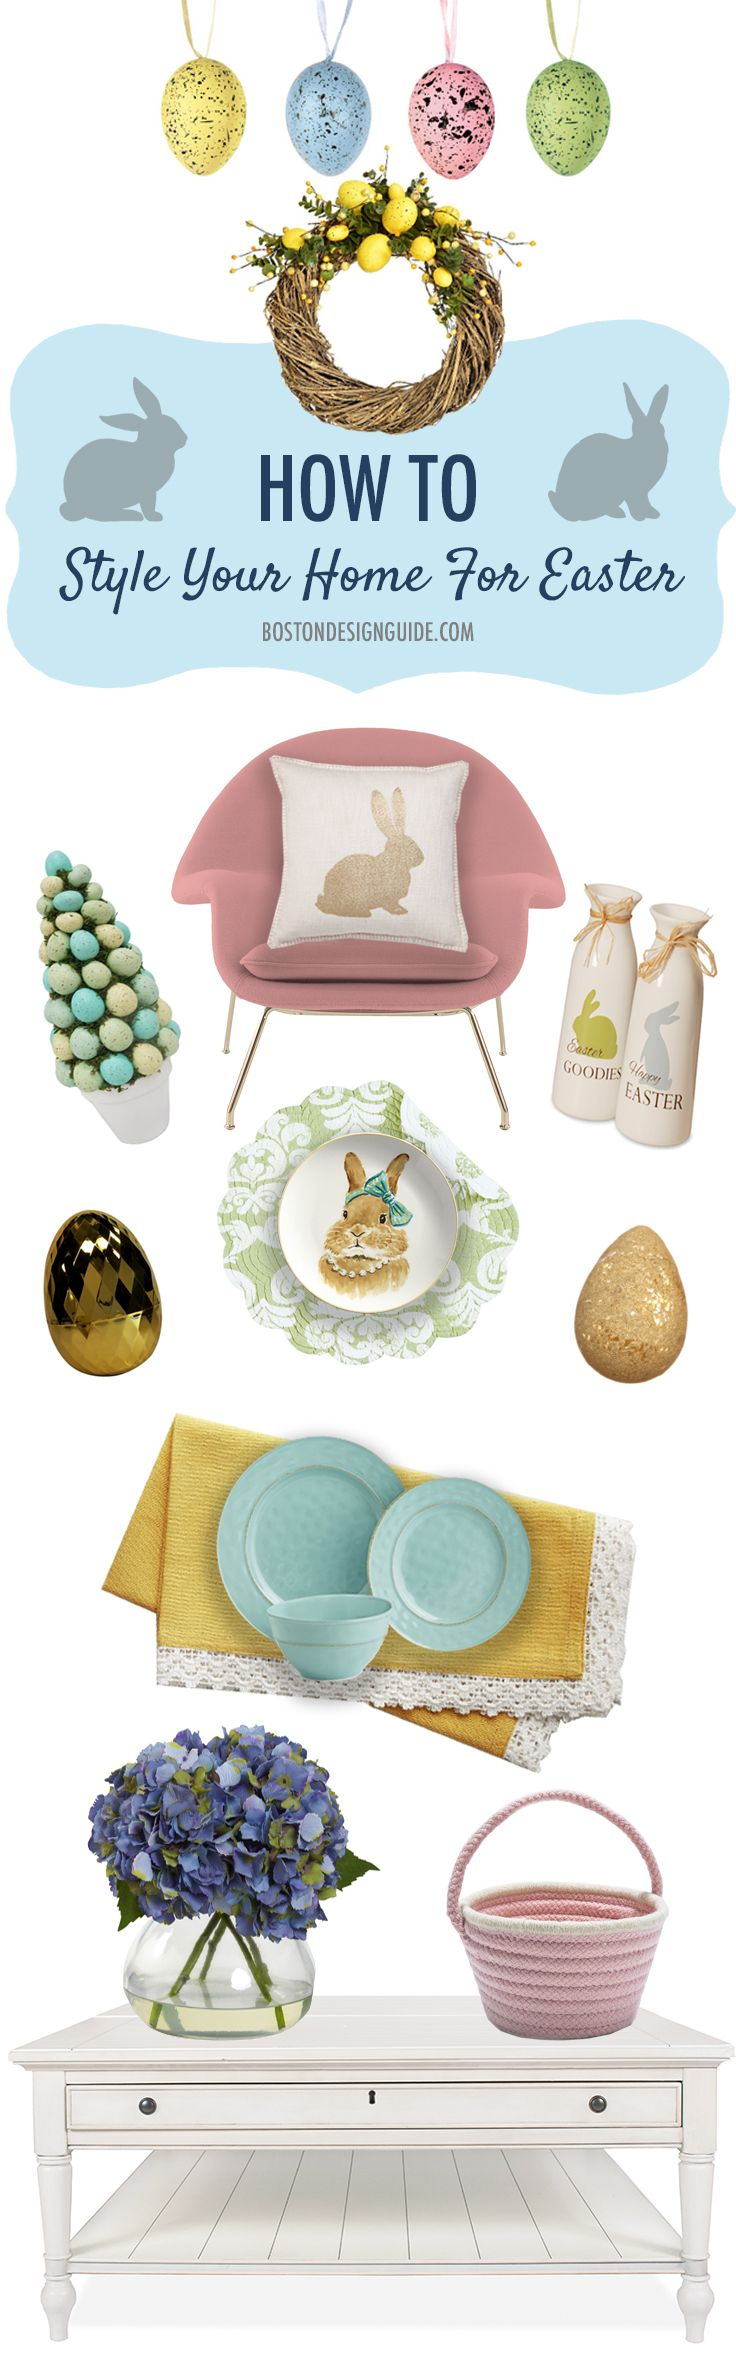 Unique holiday shopping gifts for the family boston design guide - Holiday Decor Entertaining